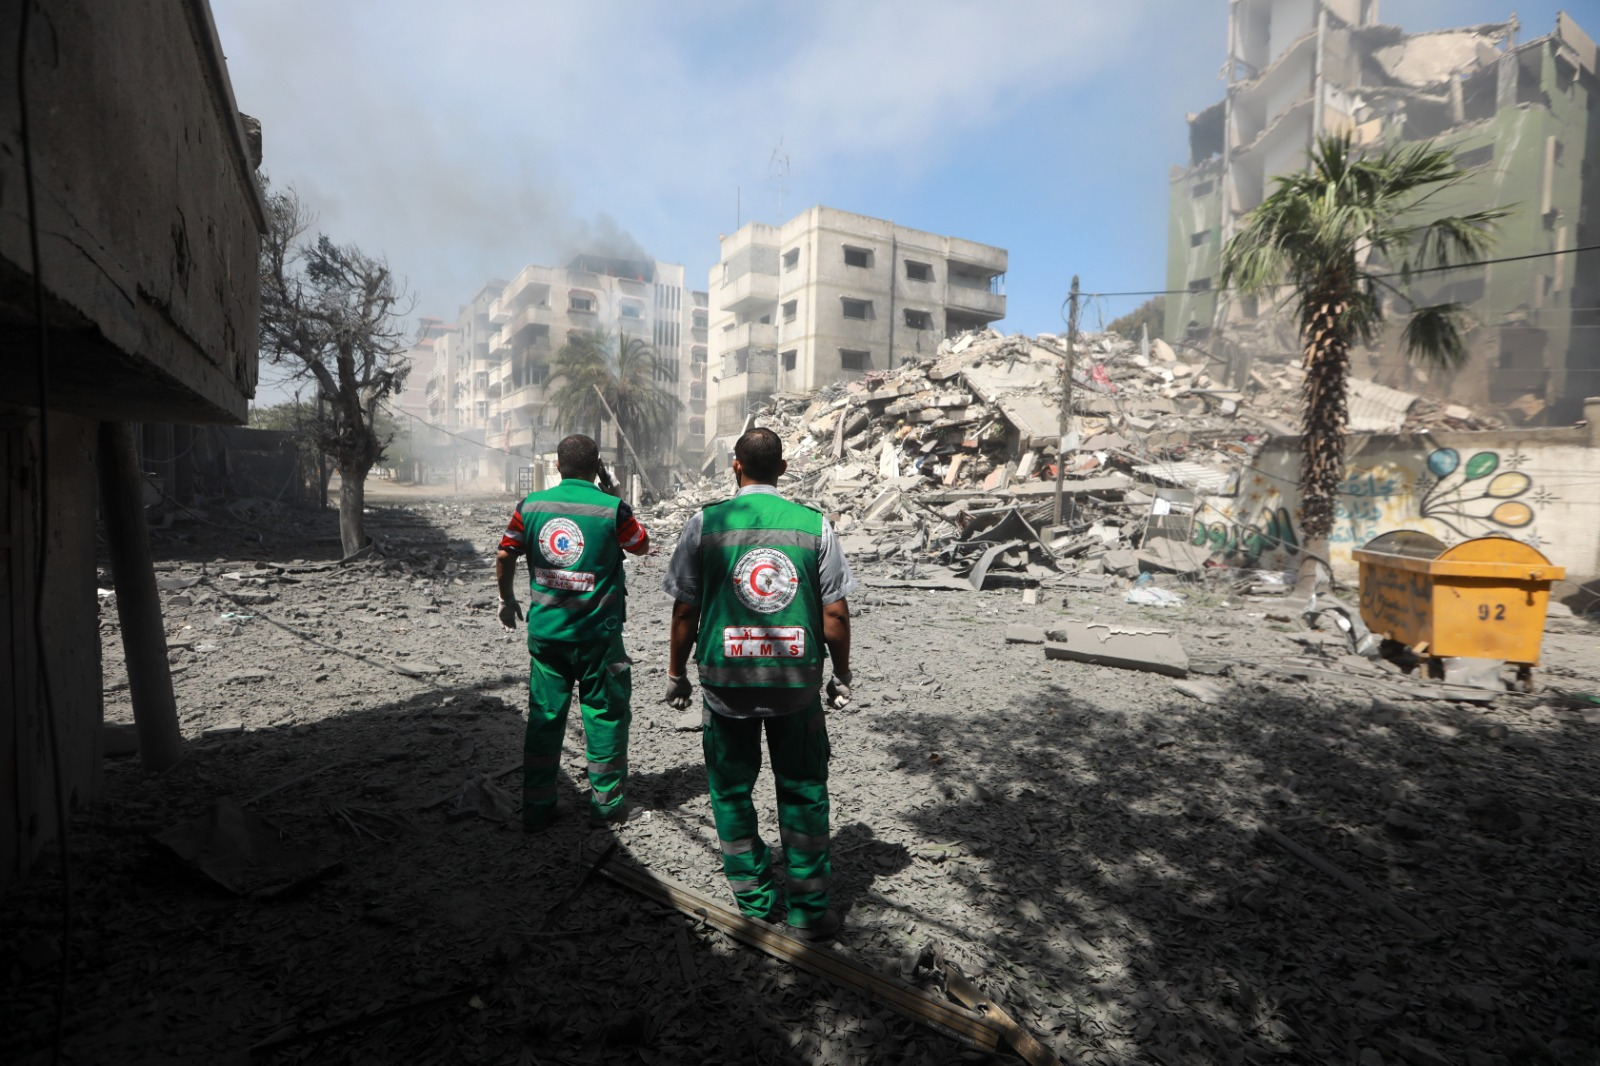 Medics with the Palestinian Red Crescent assessing damage after an Israeli airstrike in Gaza, May 7, 2021. (Mohammed Zaanoun/Activestills)